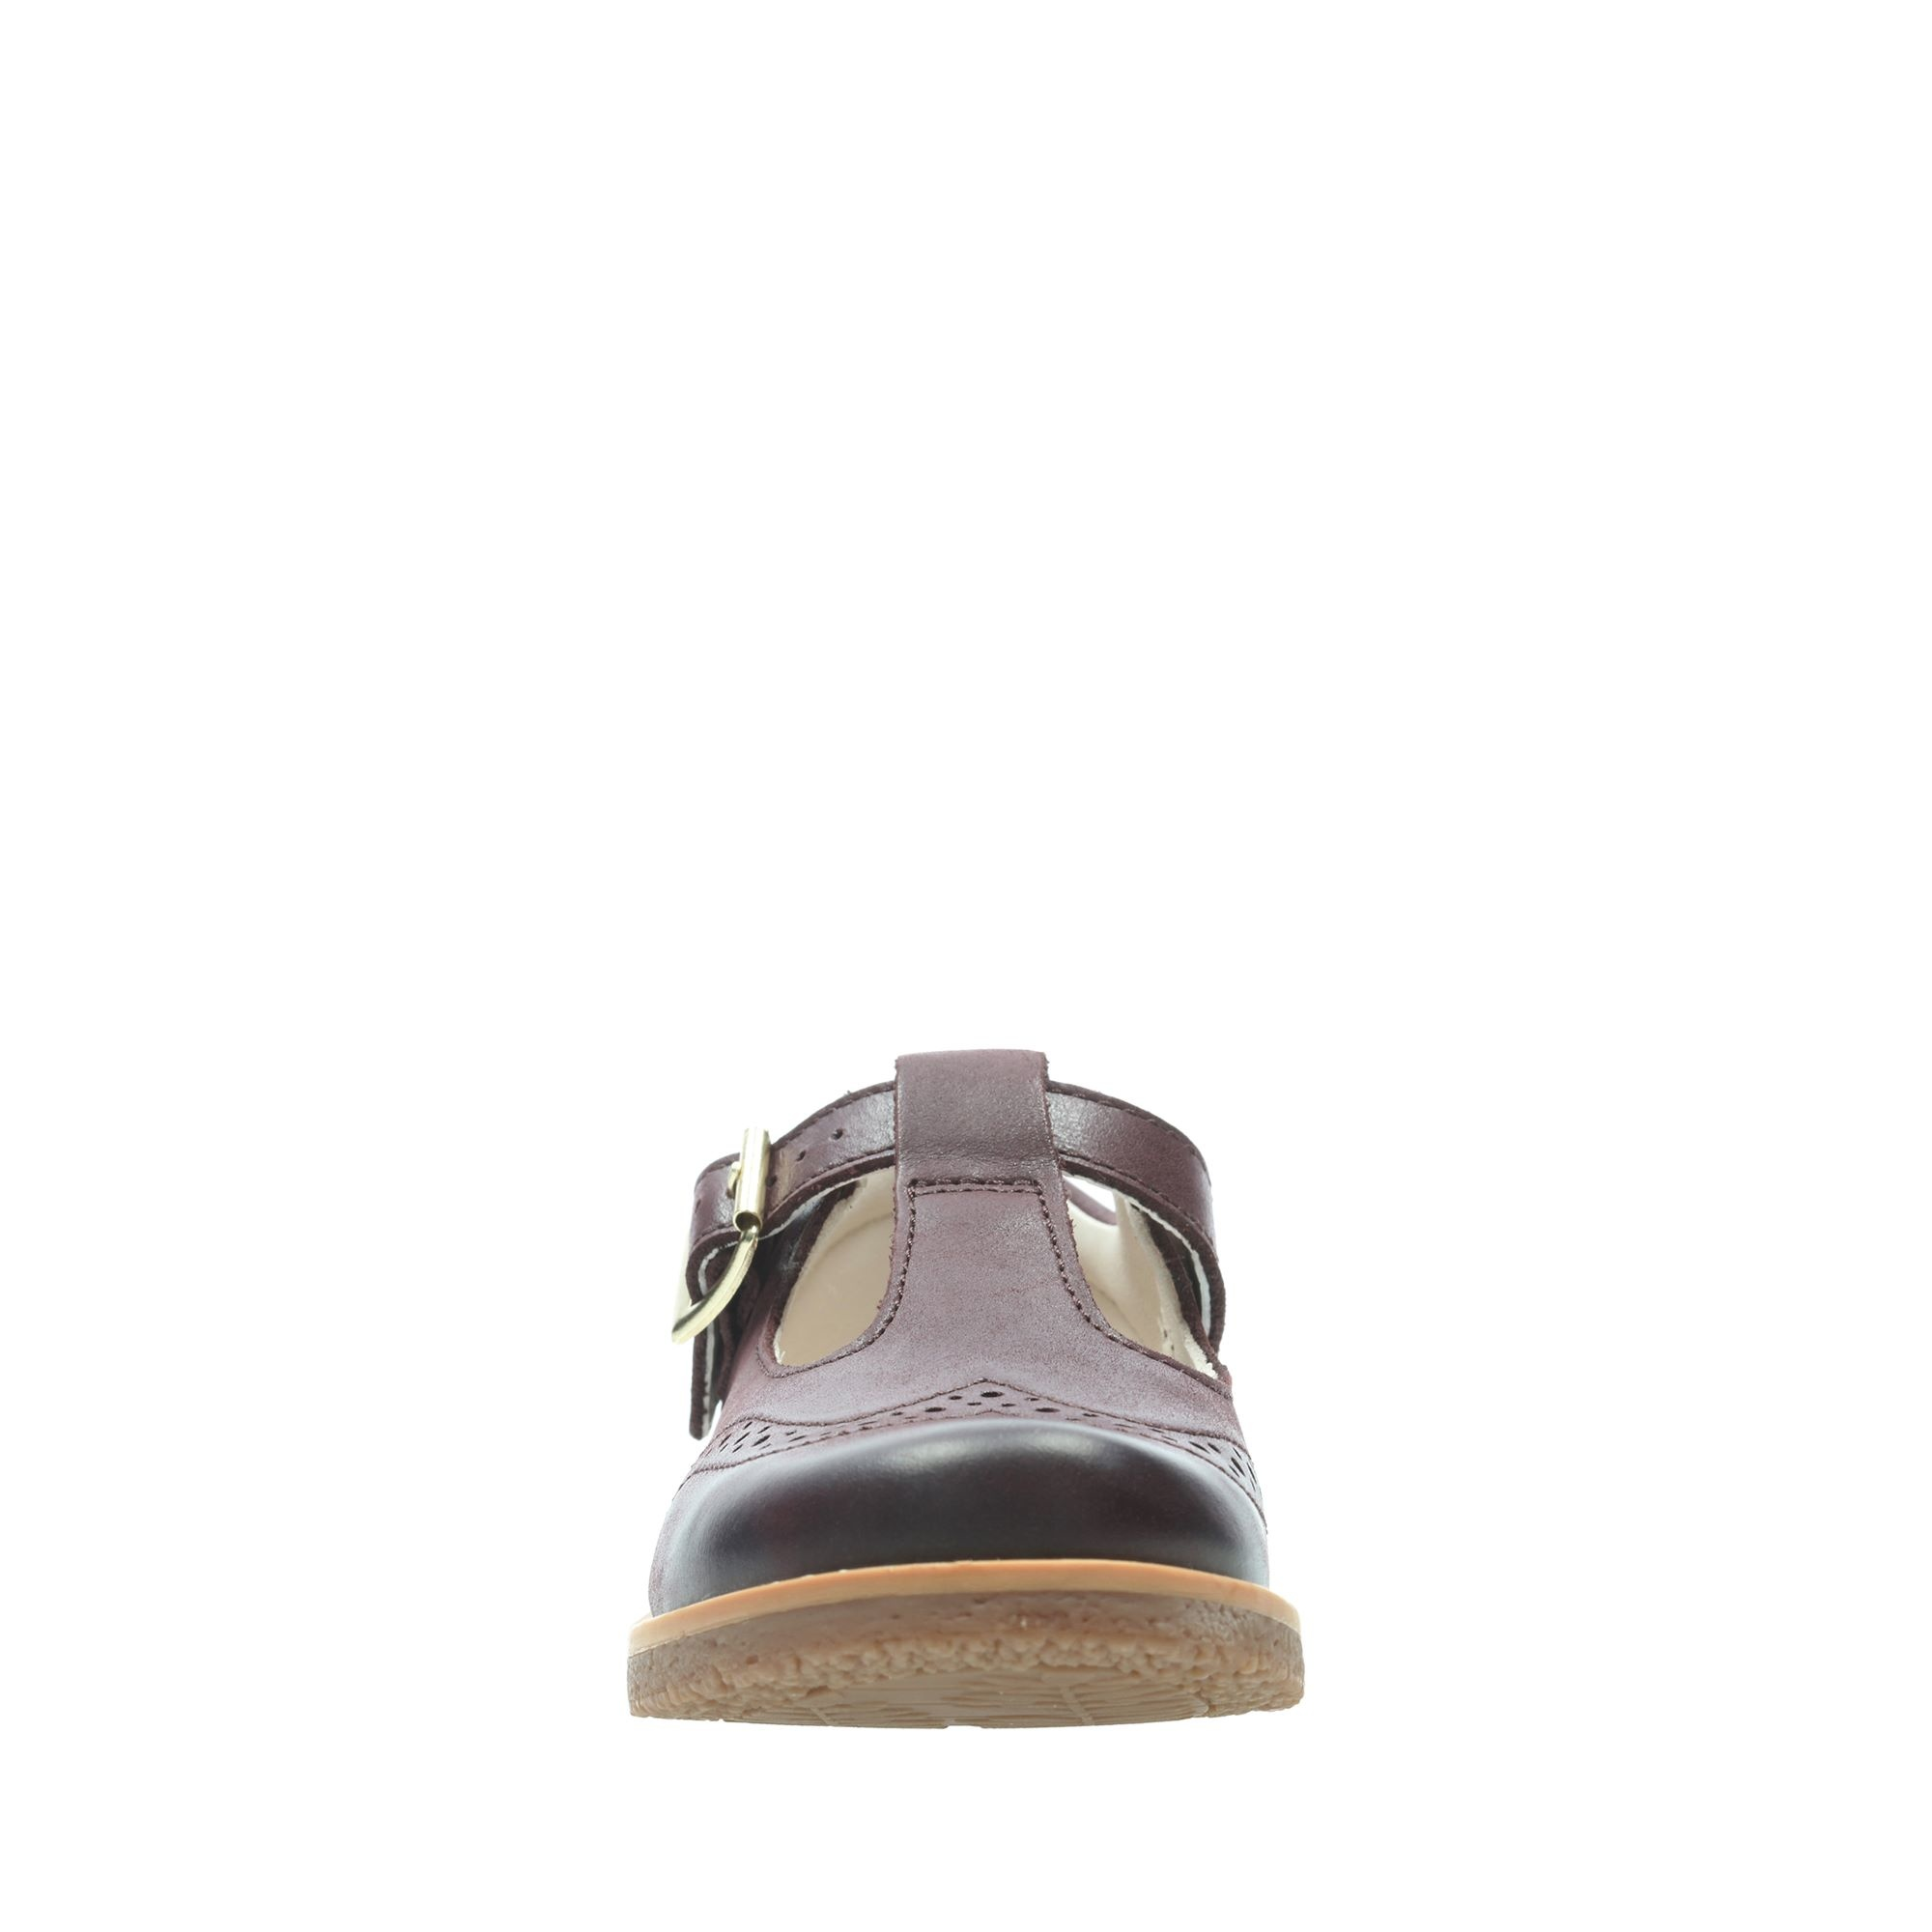 Clarks Comet Reign Burgundy Junior